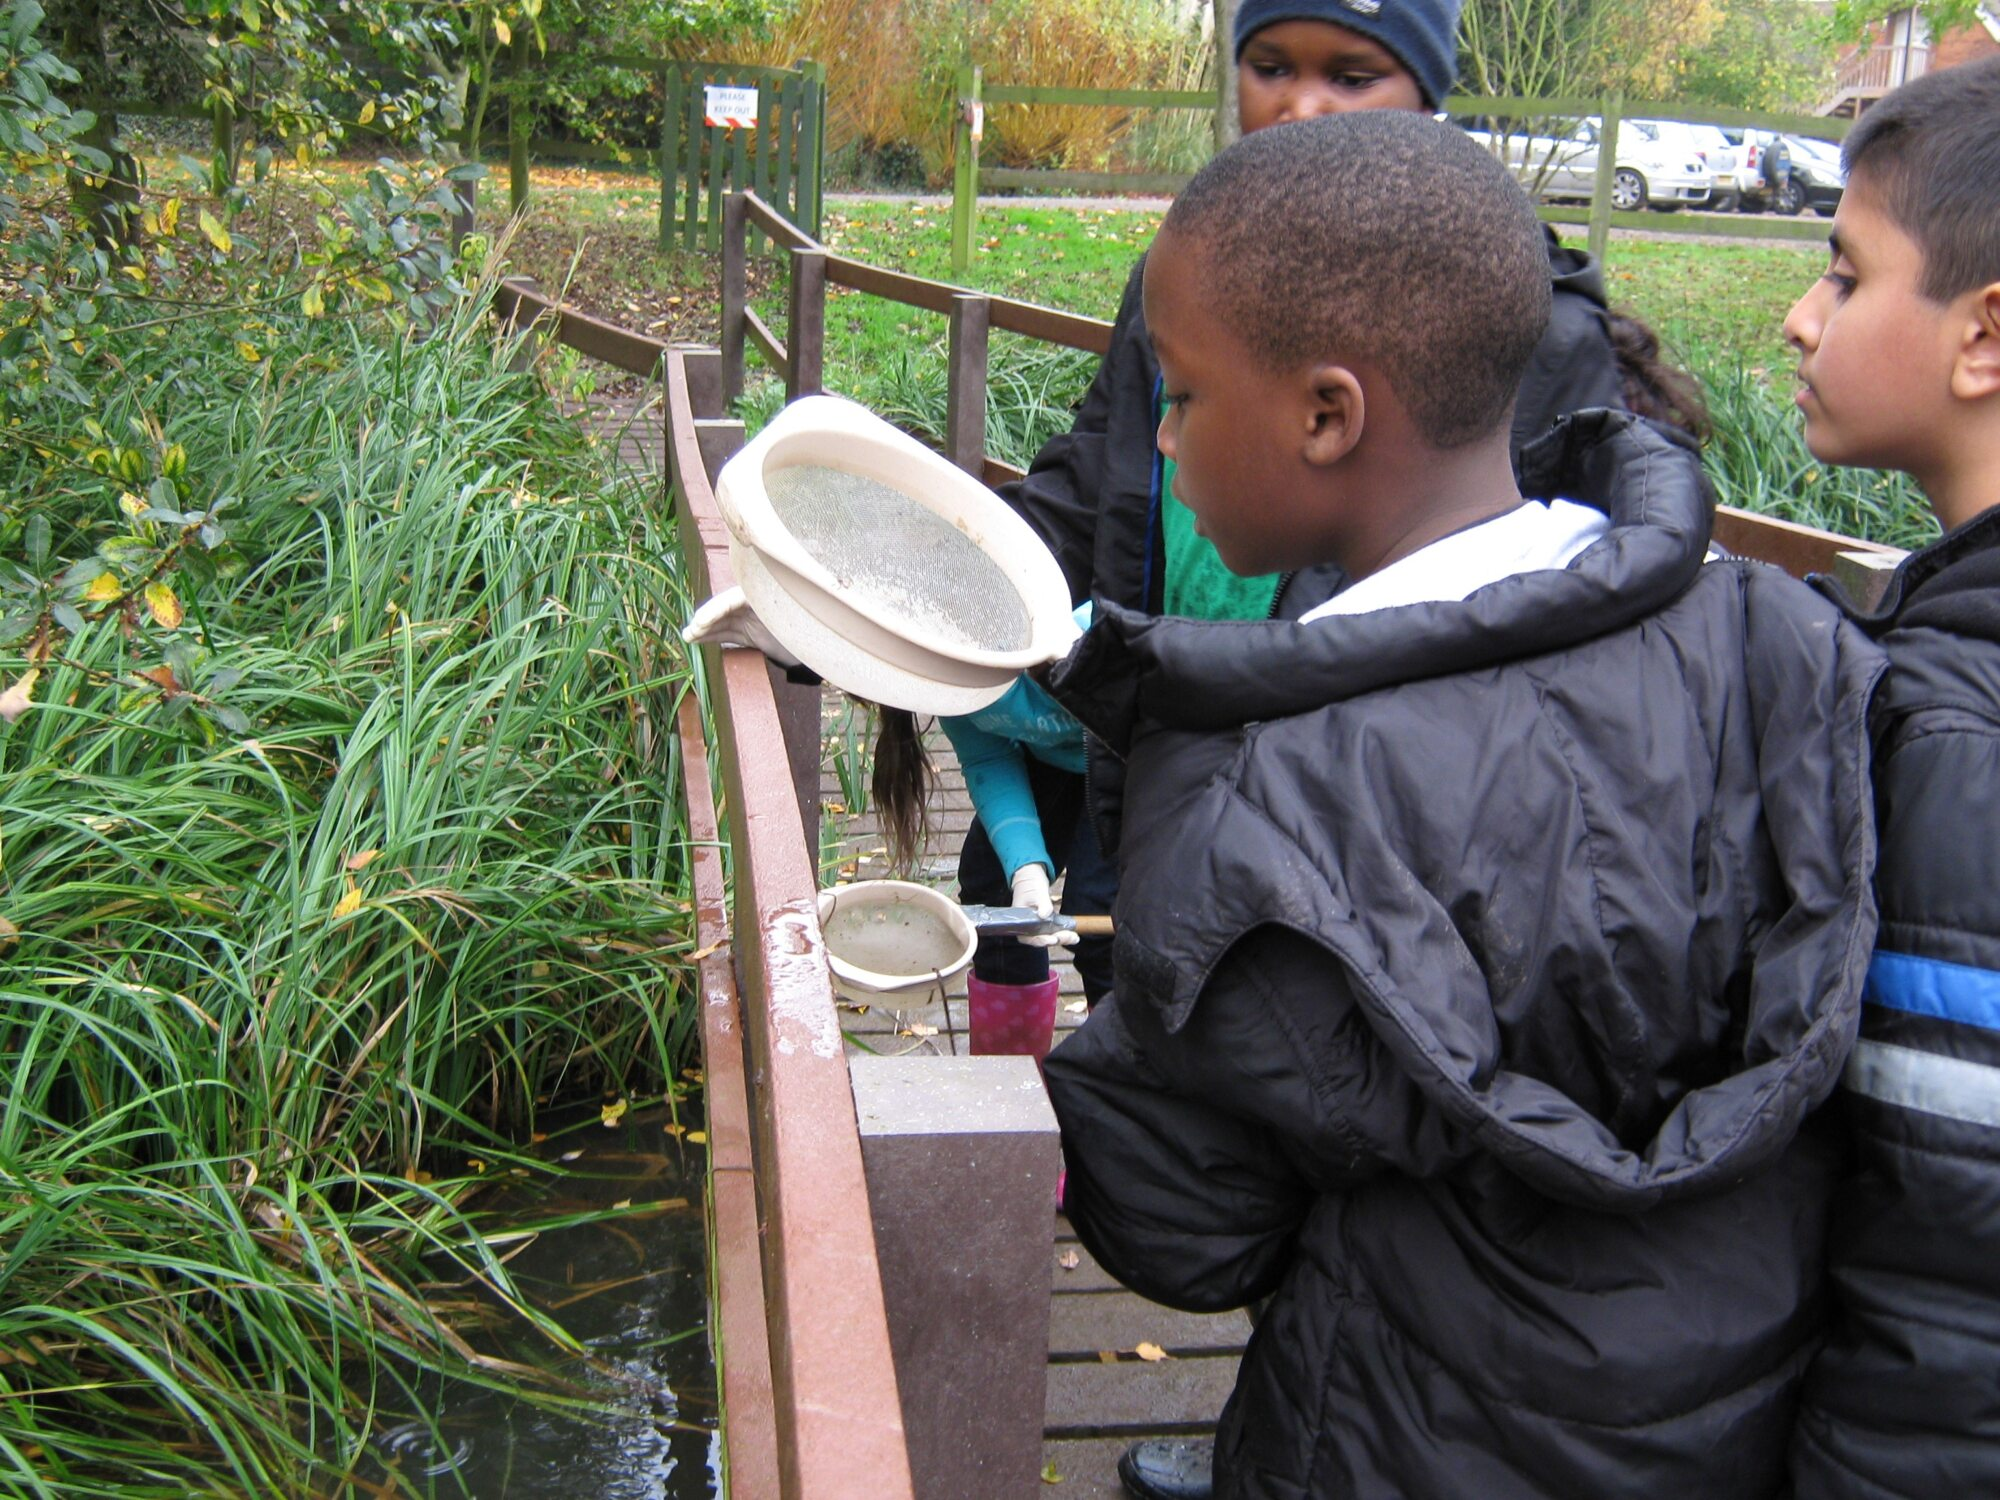 Cardfields pond dipping